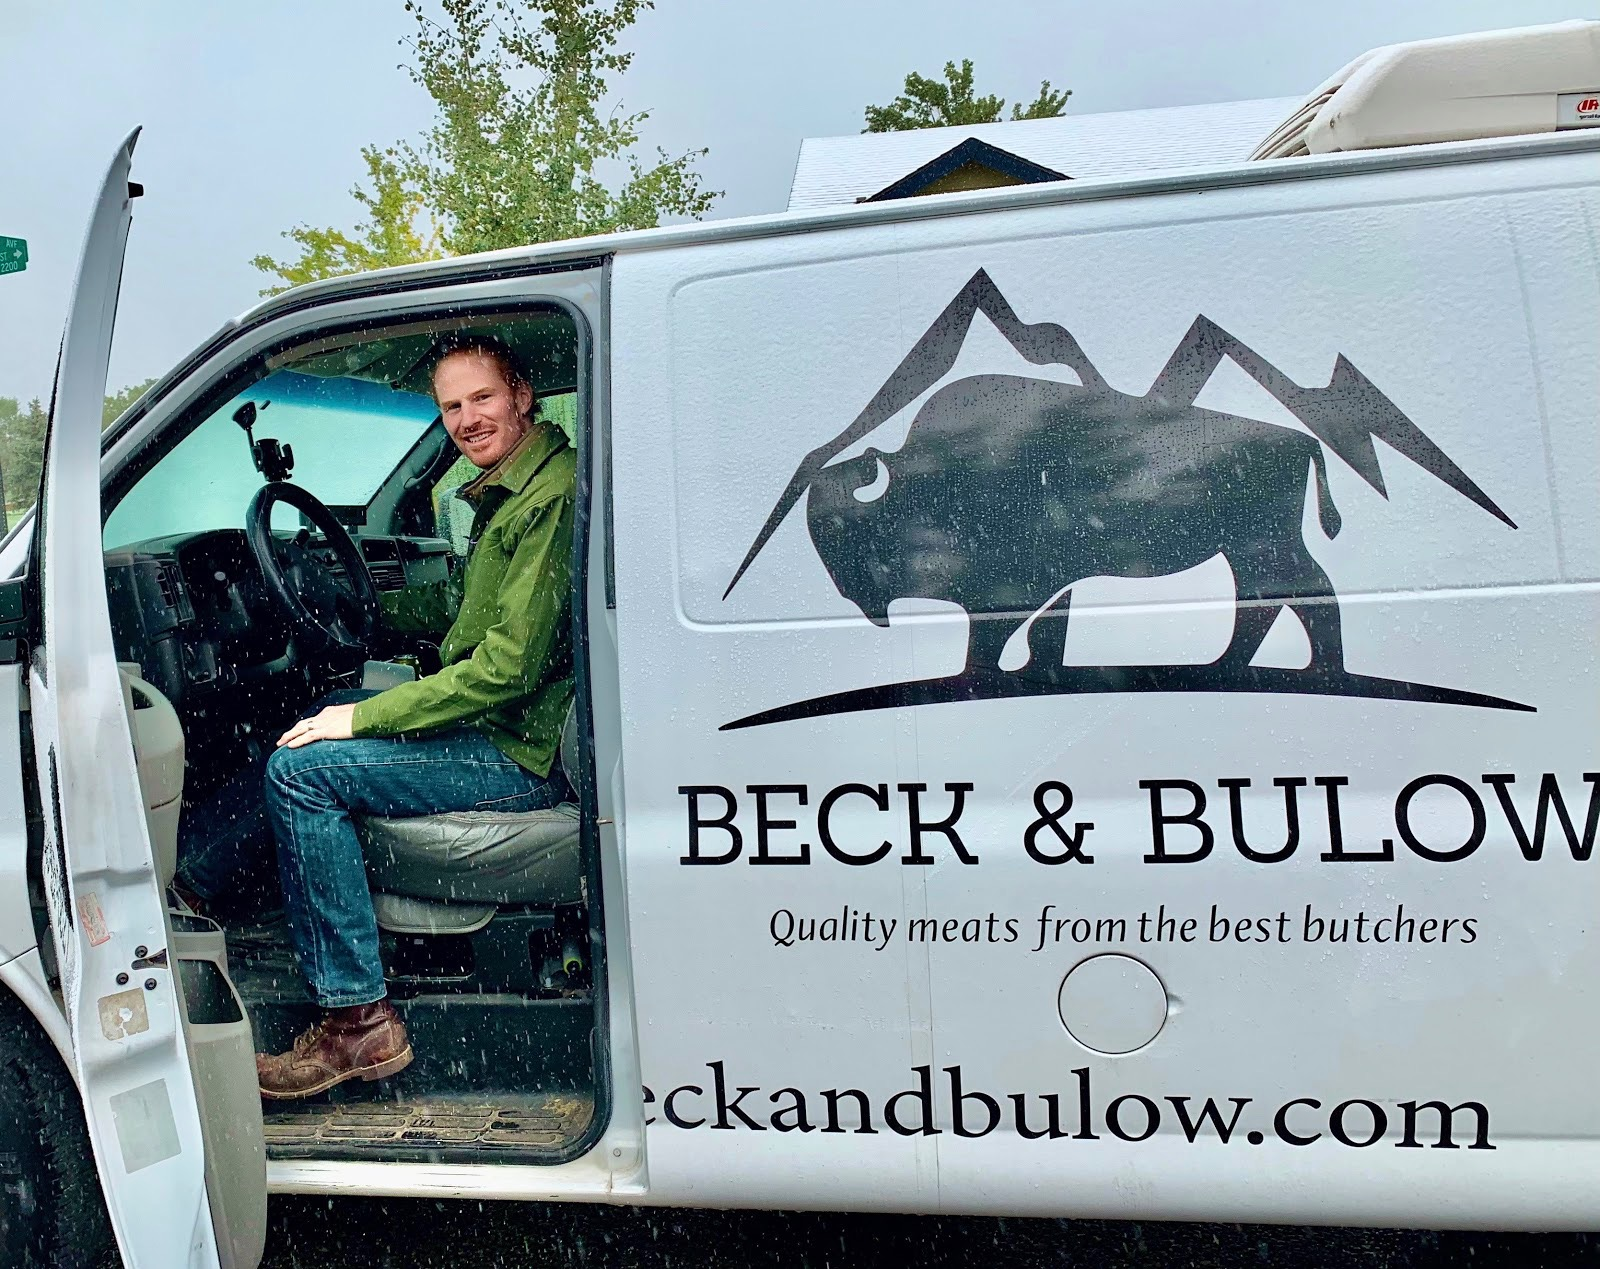 We're Eagerly Anticipating The Opening Of Our Butcher Shop - Beck & Bulow